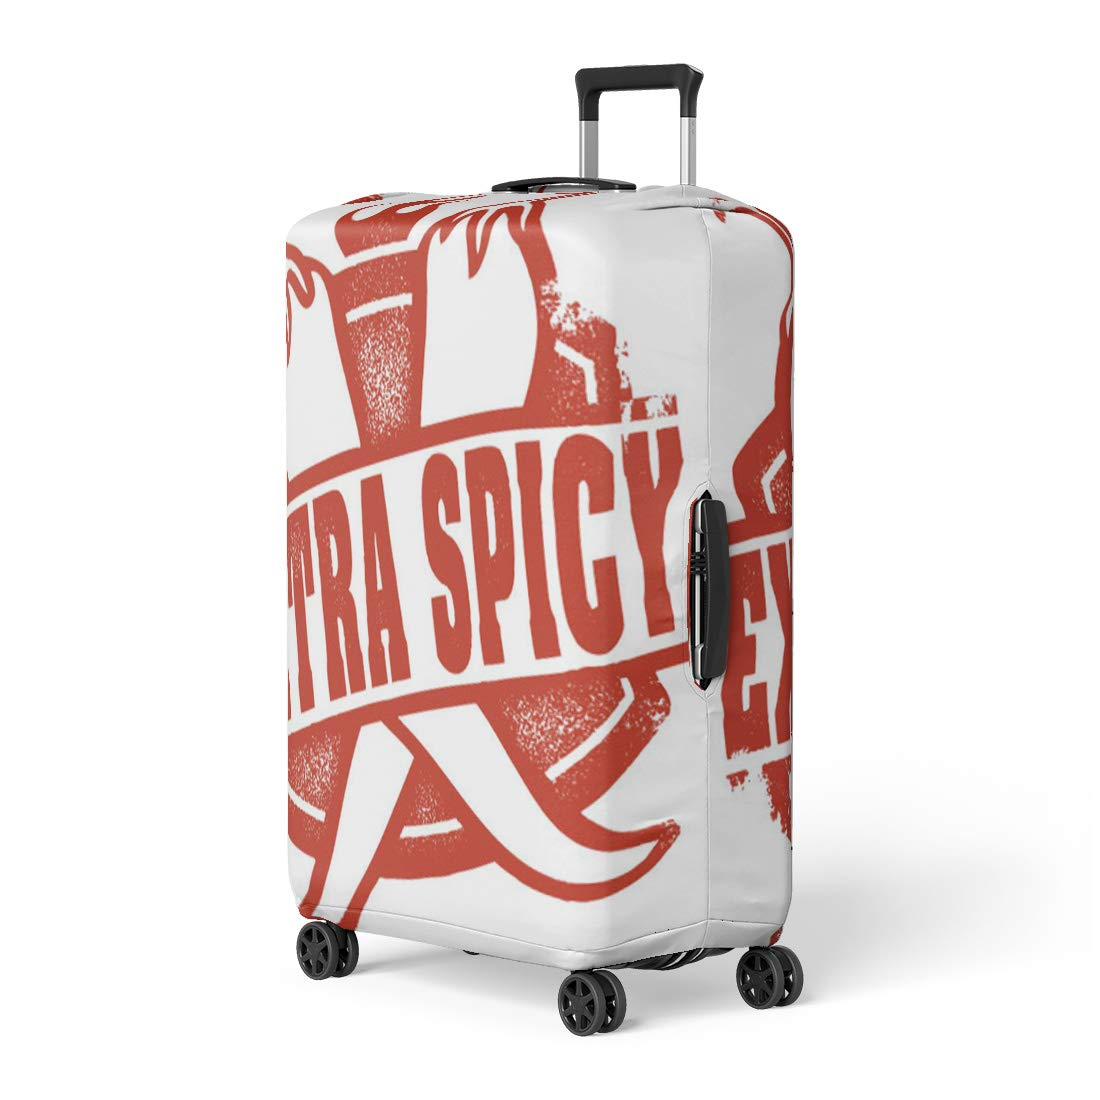 6a2d2da9a5b3 Amazon.com: Pinbeam Luggage Cover Hot Extra Spicy Chili Pepper Stamp ...